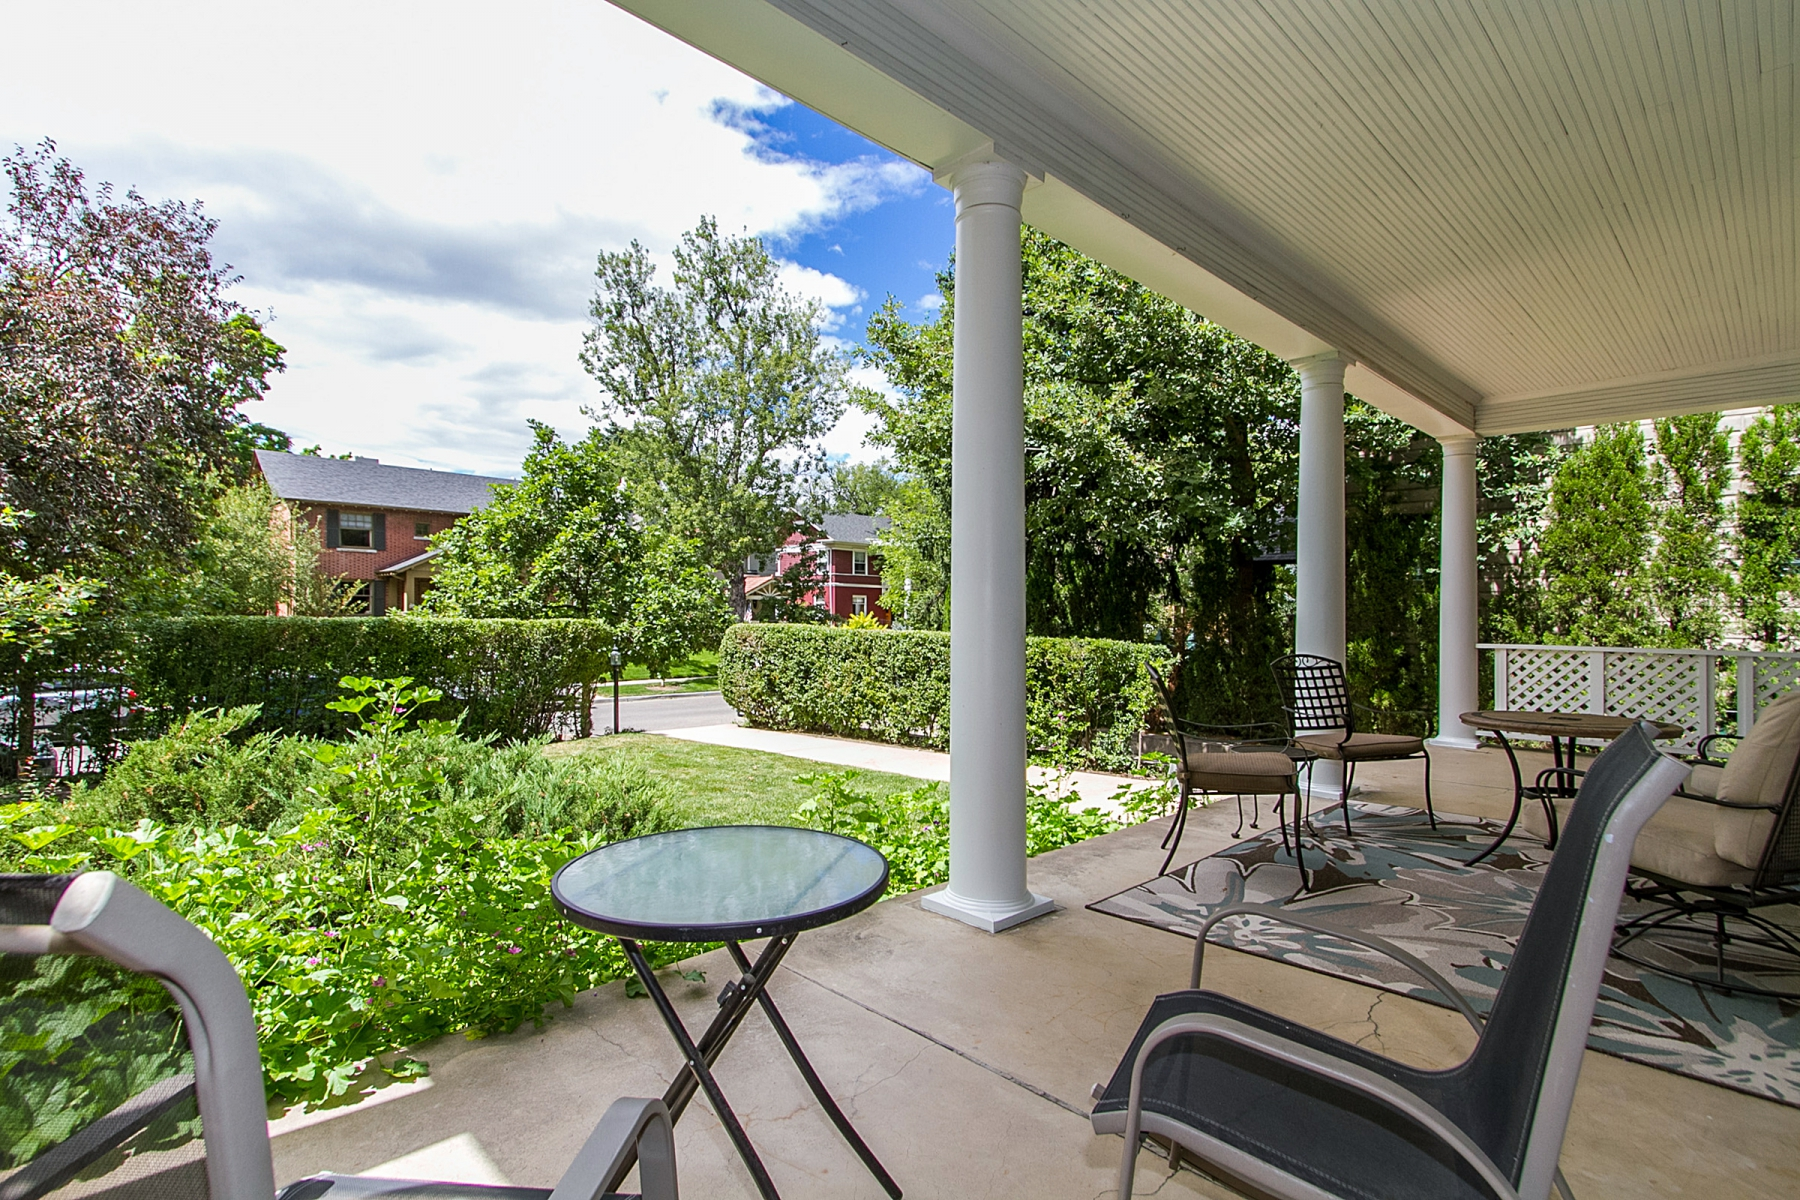 Single Family Home for Sale at Location, Location, Location! 348 Lafayette Street Country Club, Denver, Colorado 80218 United States